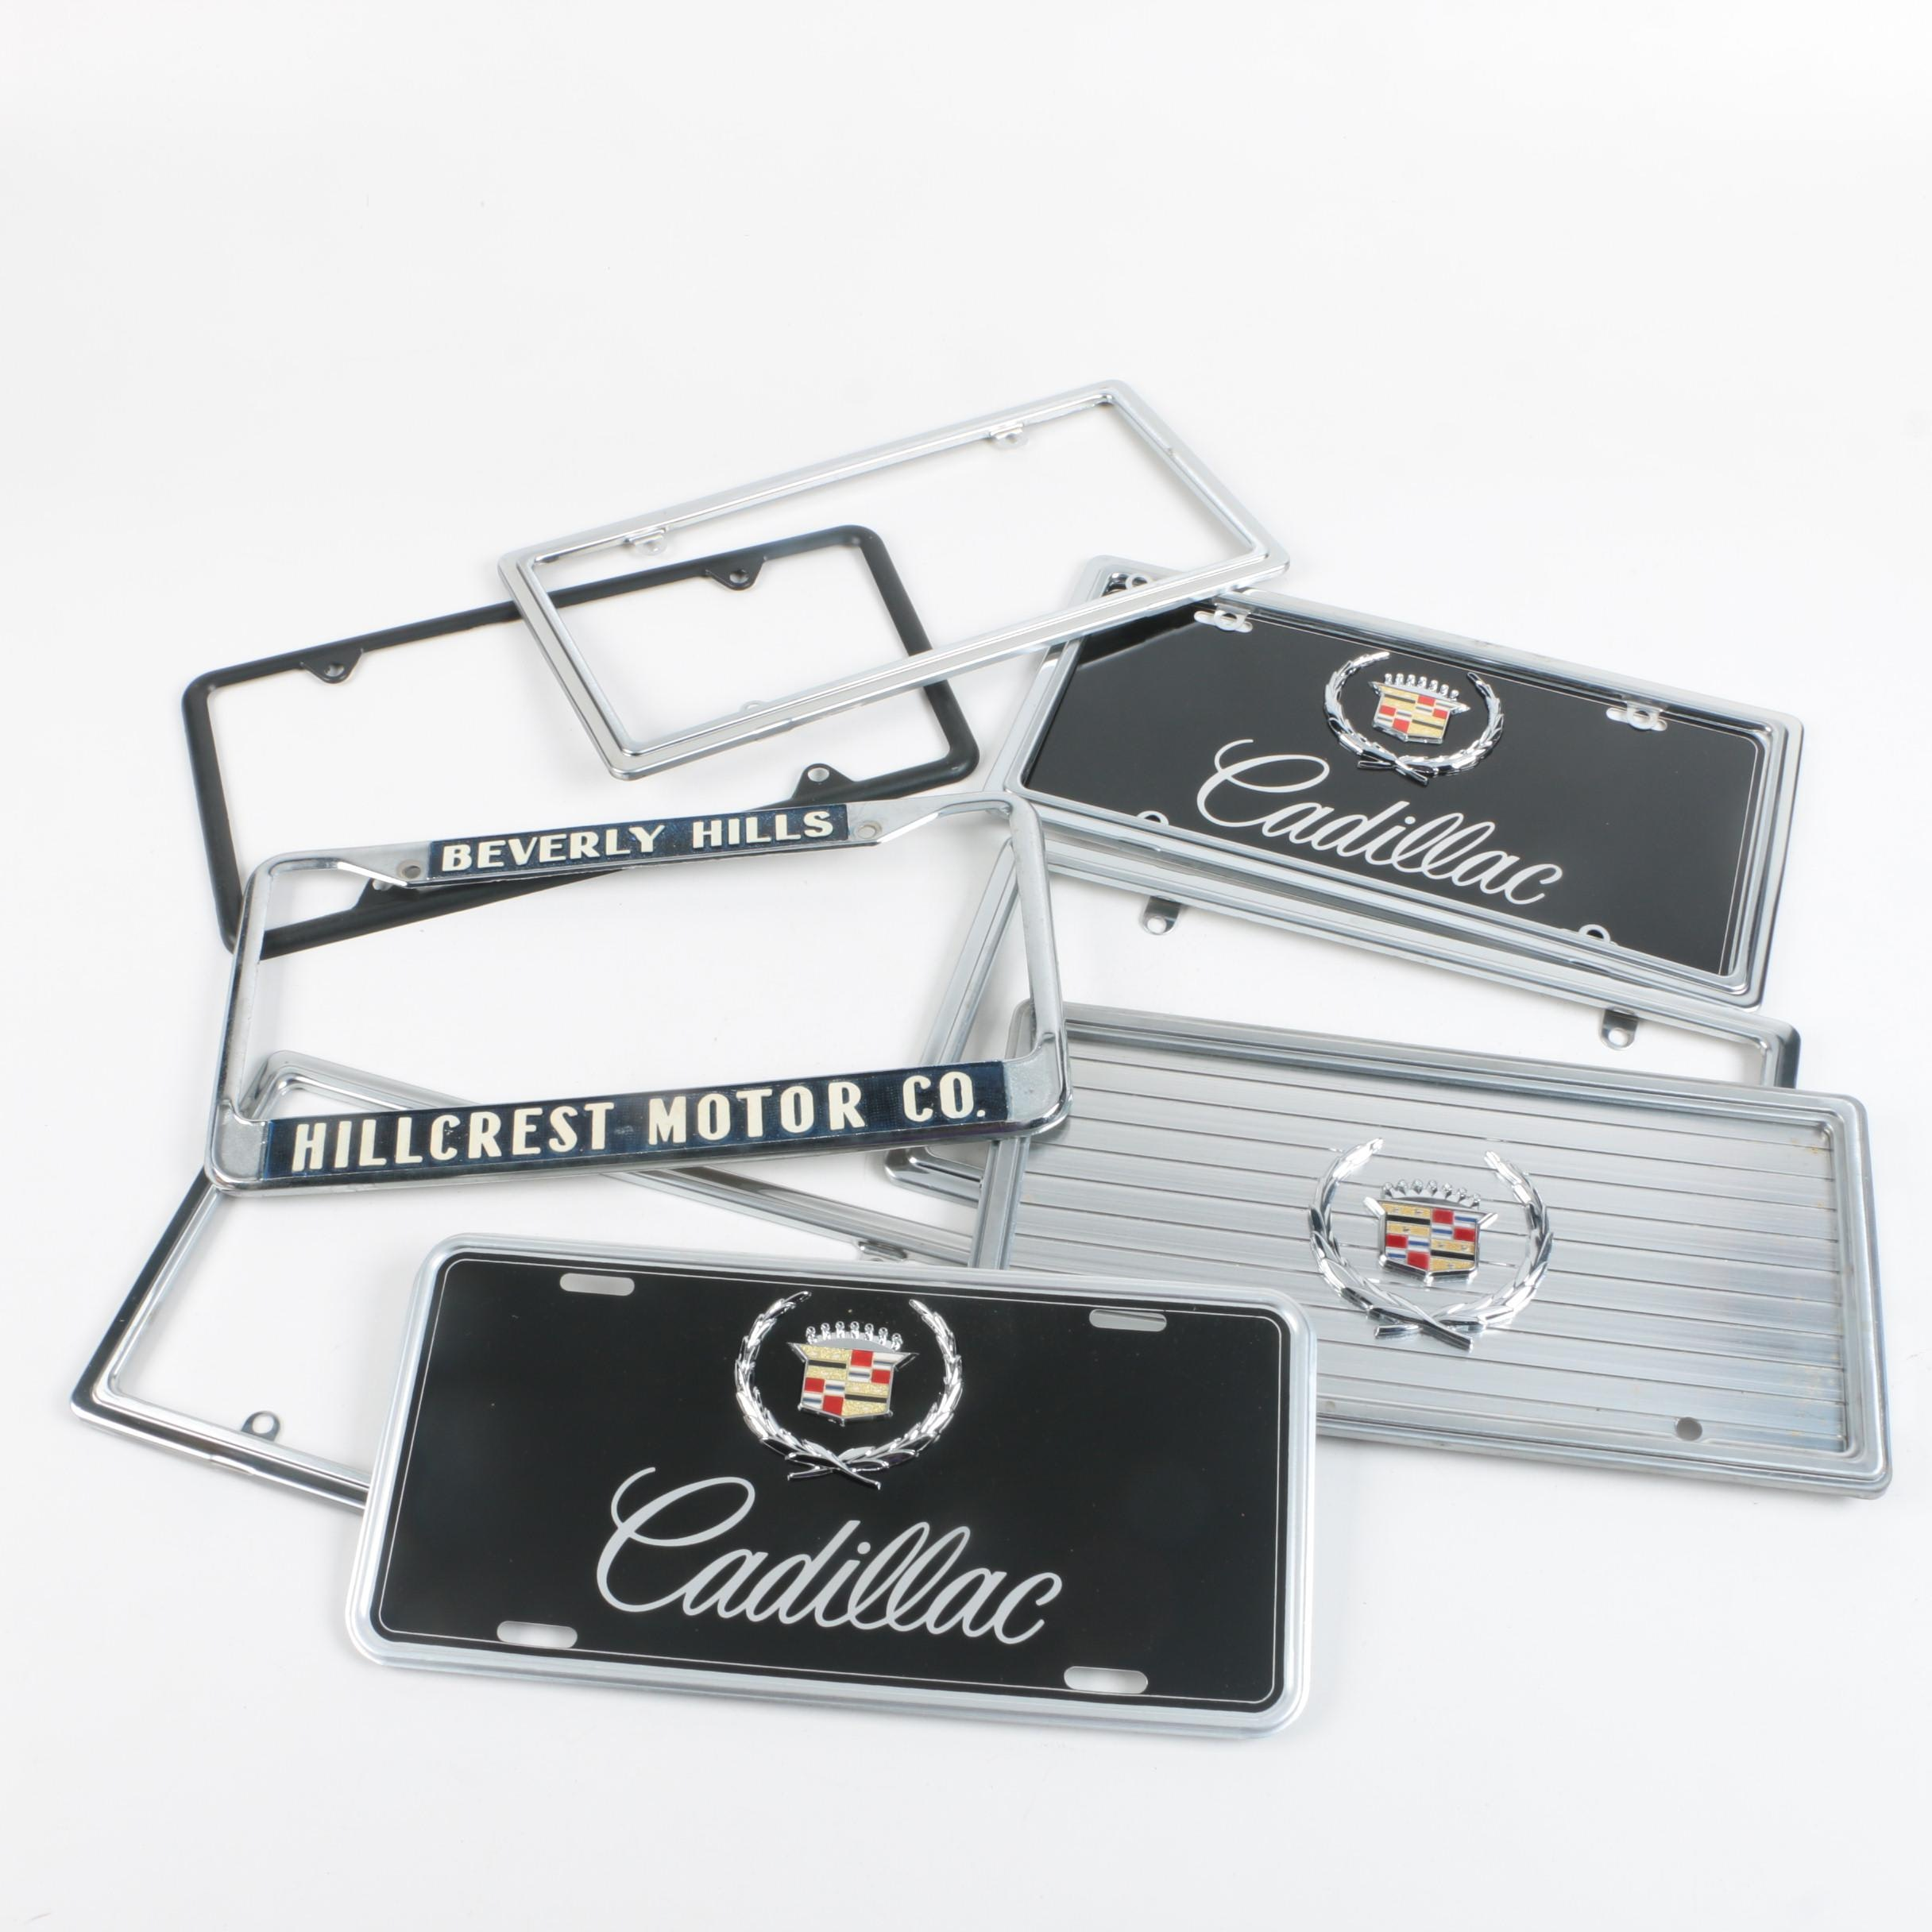 Assortment of License Plate Holders including Cadillac Plates